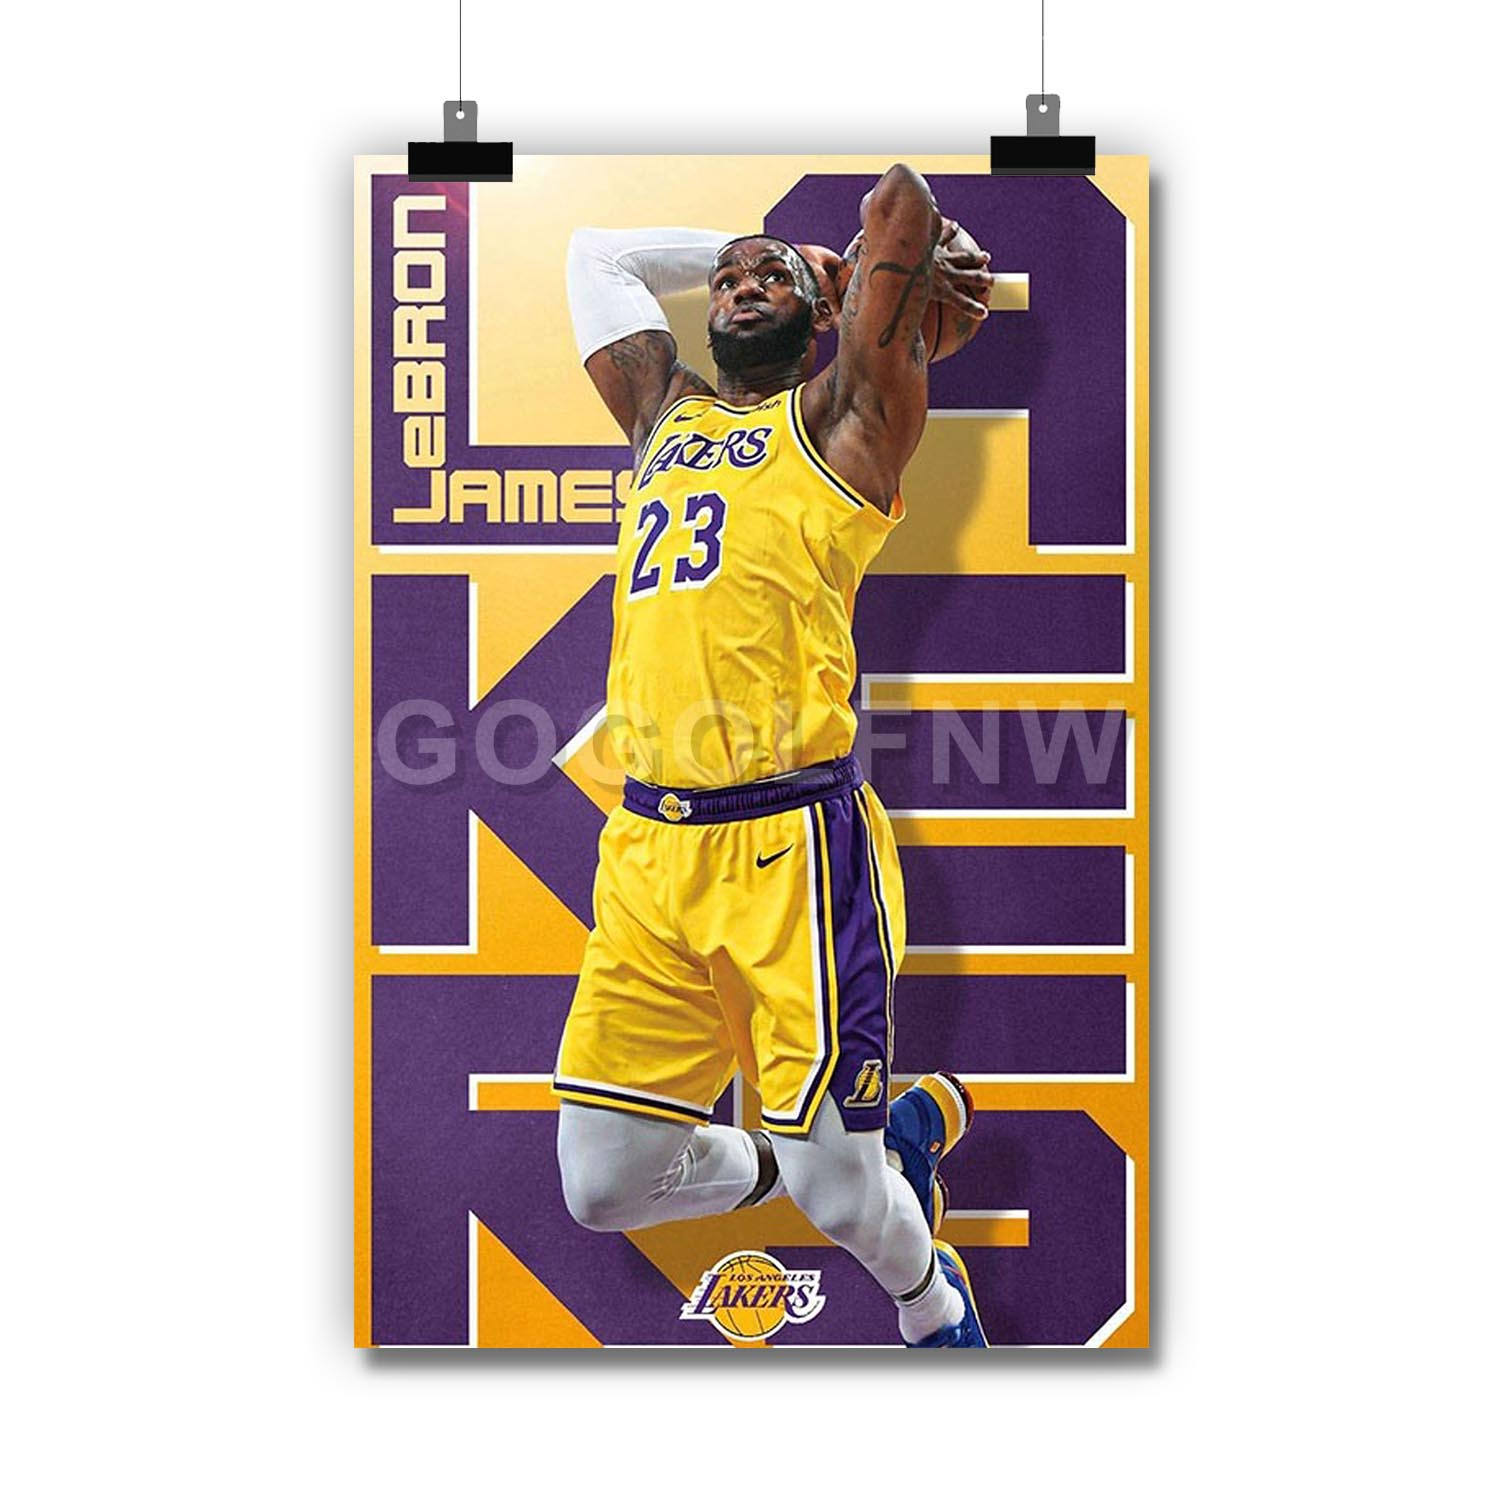 Los Angeles Lakers Lebron James Poster Standard Size Lebron James Posters Wall Poster Print 18-Inches by 24-Inches